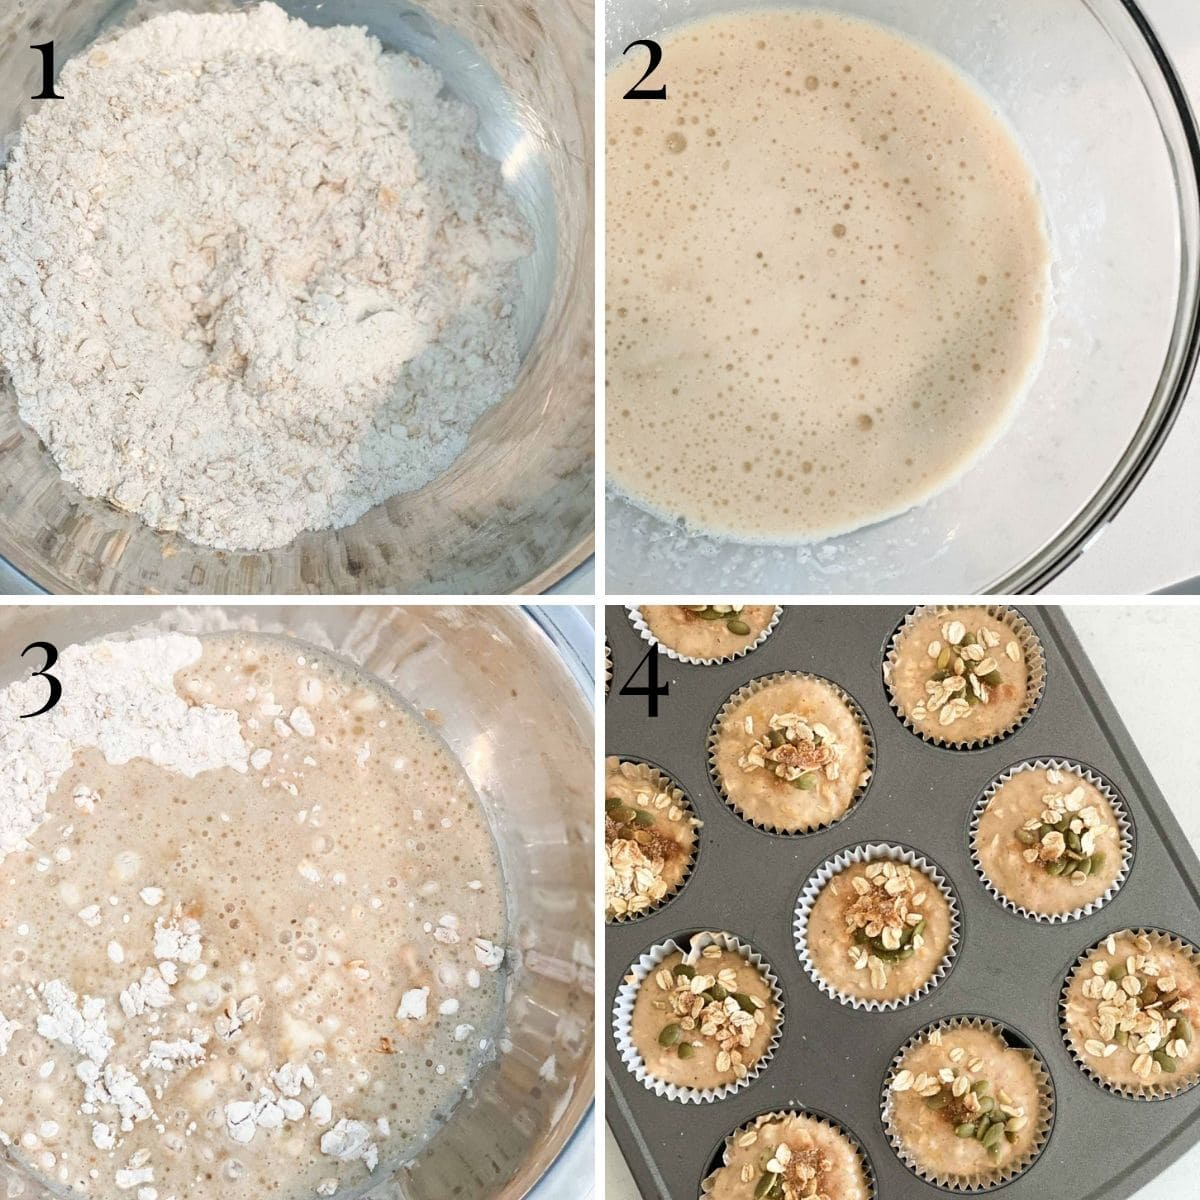 A step by step process of baking muffins, from mixing ingredients to filling the muffin tin